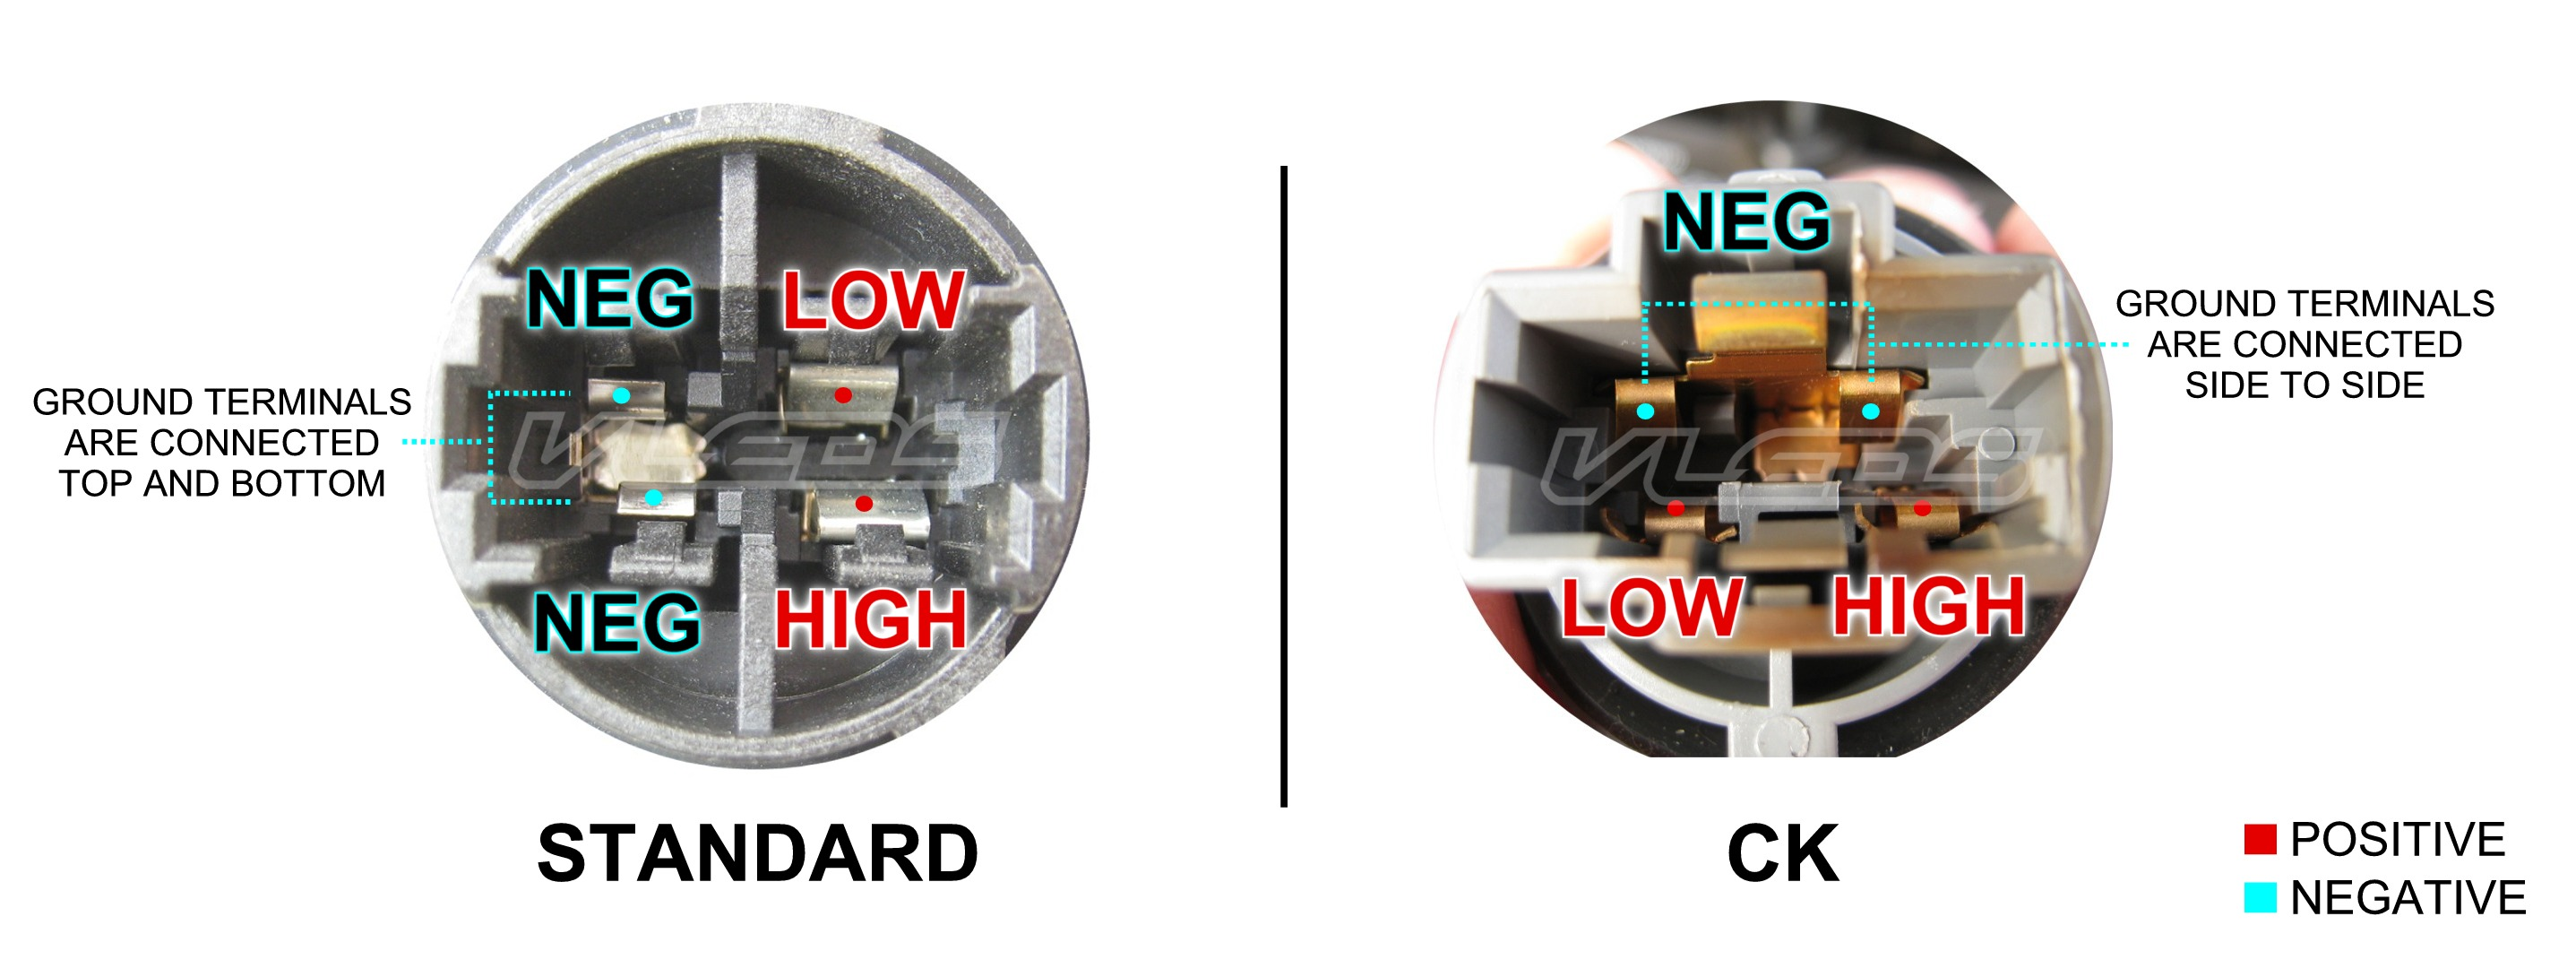 CK sockets have the ground on the top and the high and low circuits below.  Click on the image below to see it in full size.